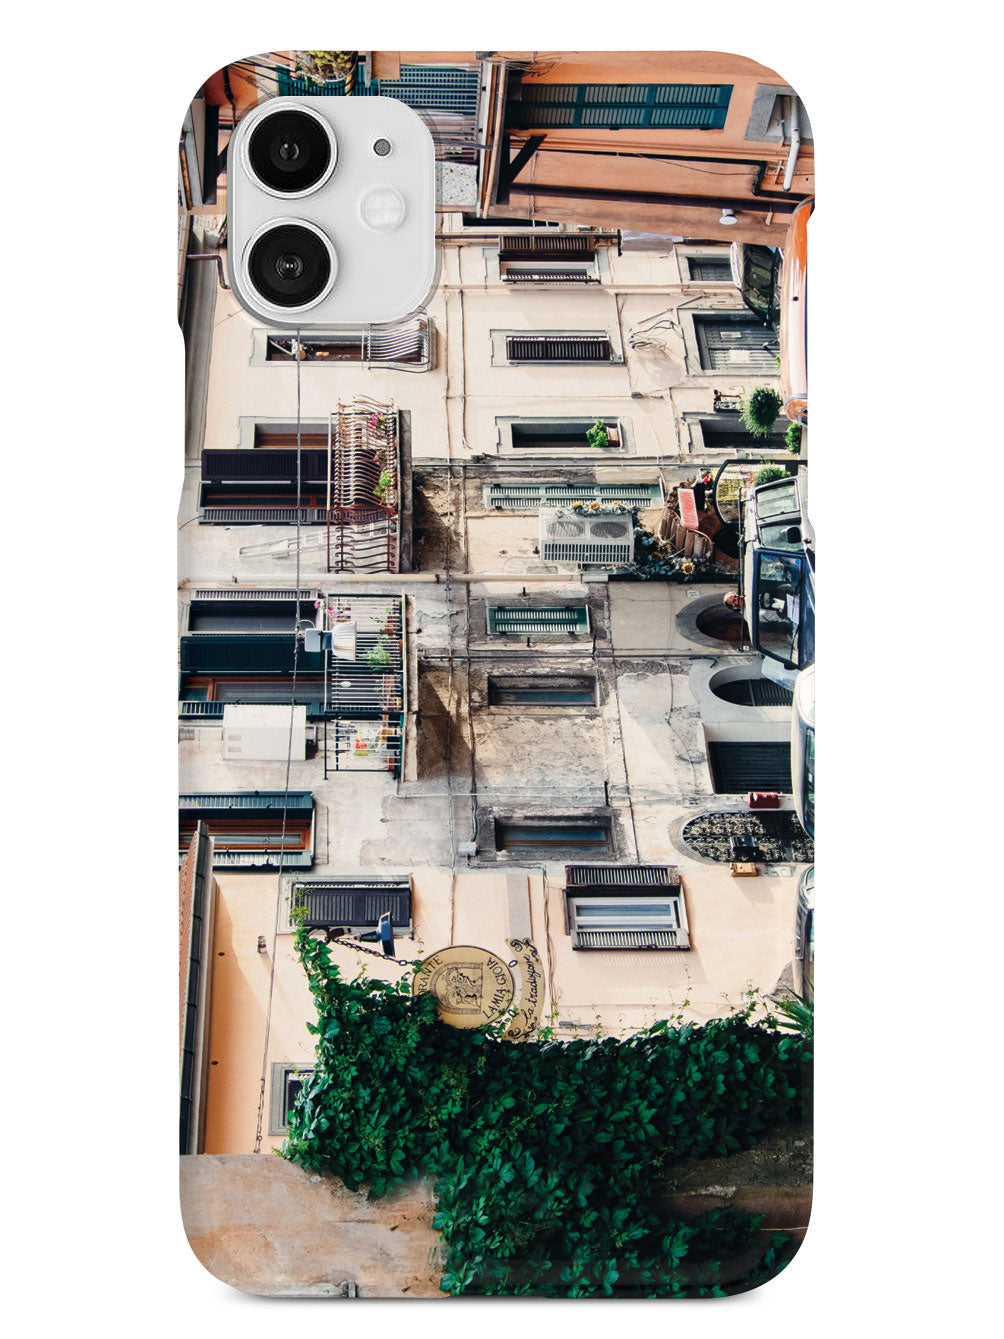 Italy City Street Photo Case